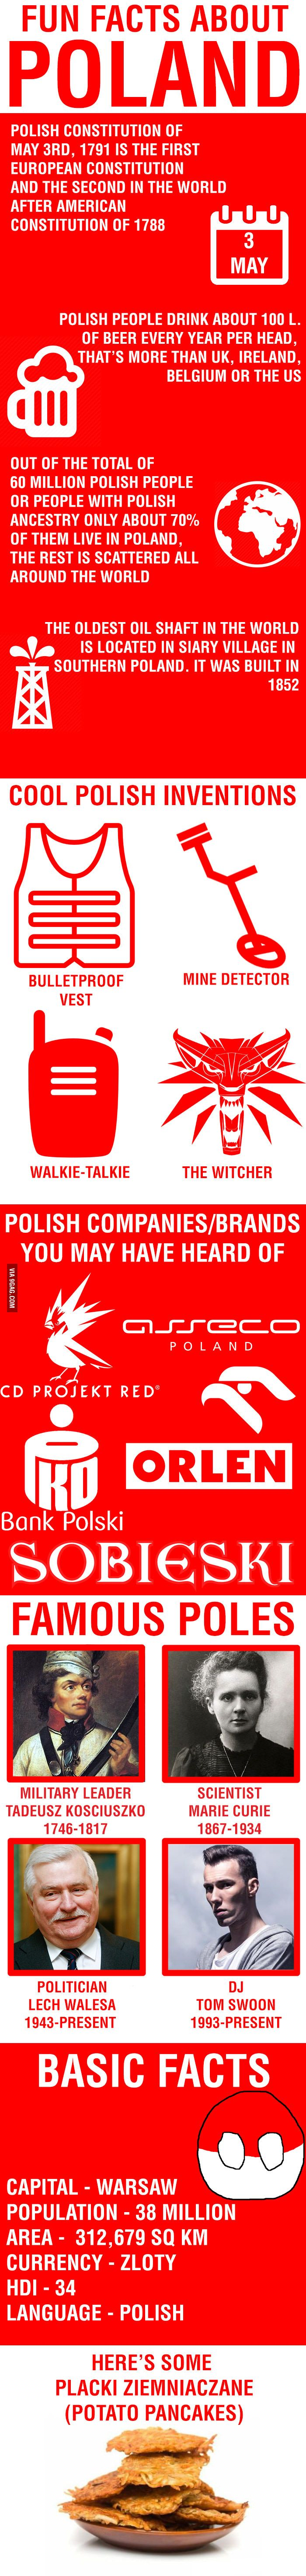 Fun facts about Poland (potato included) - 9GAG